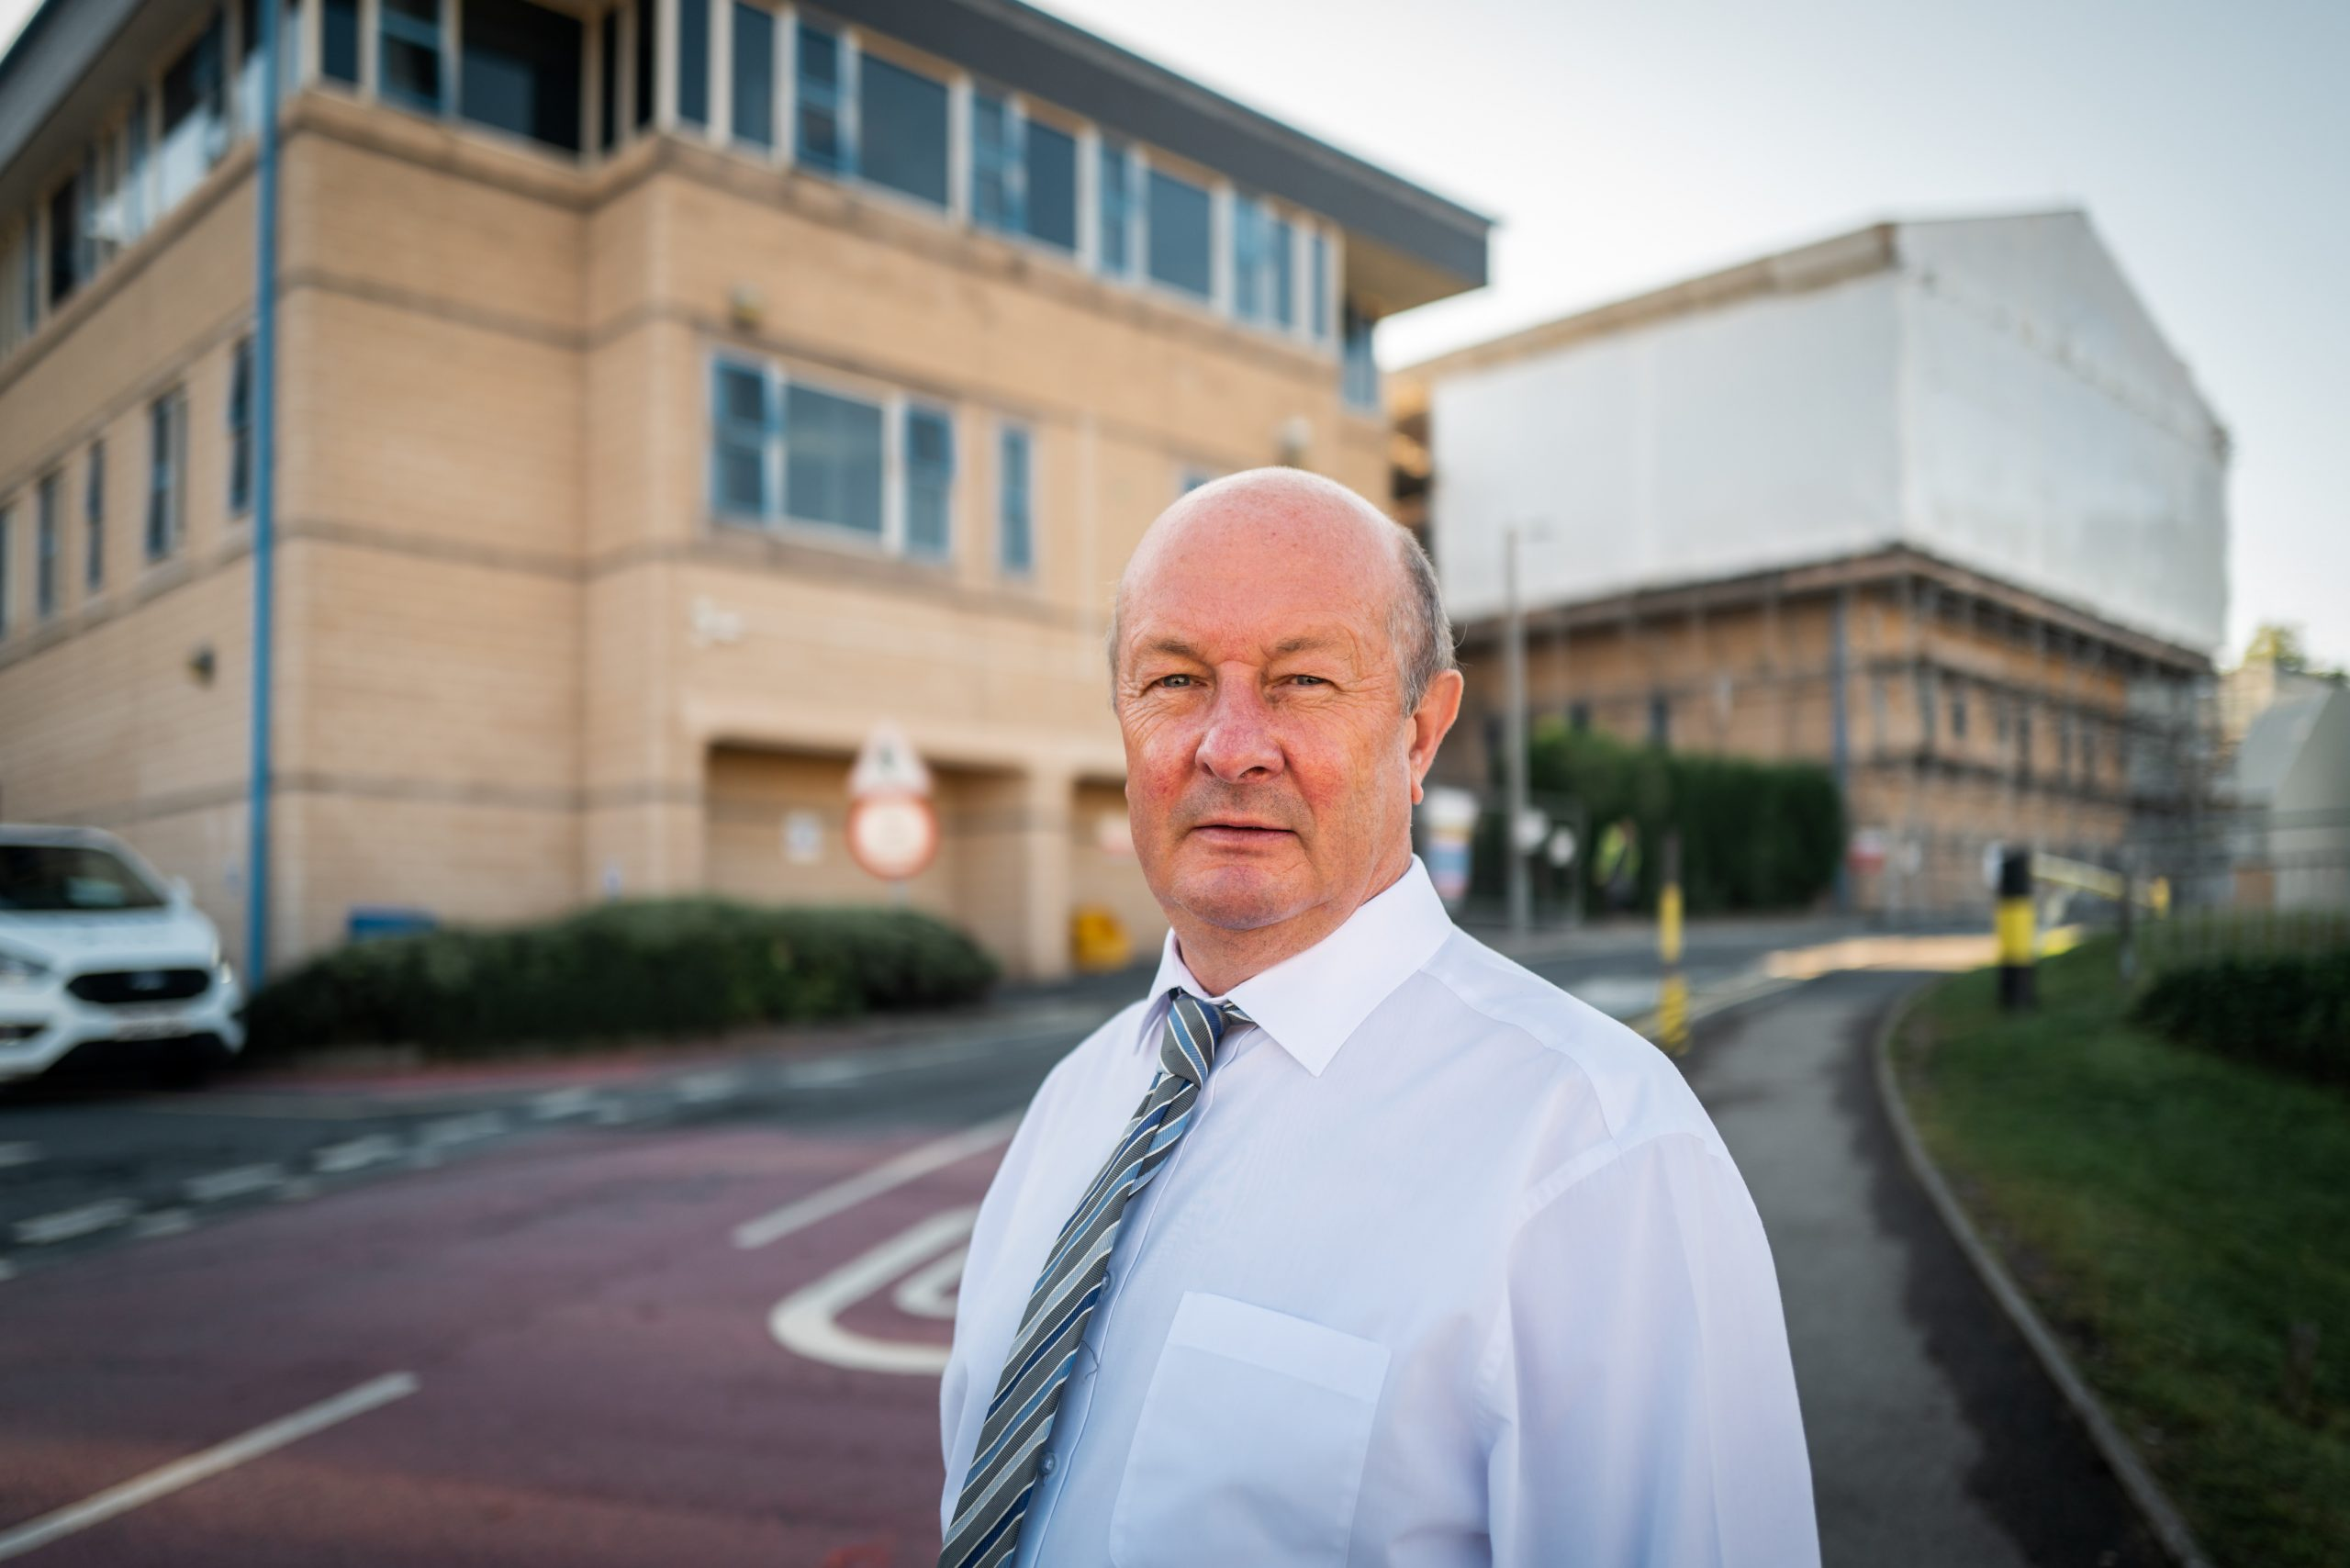 Picture of the Divisional Manager for Facilities at University Hospitals of Morecambe Bay NHS Foundation Trust.